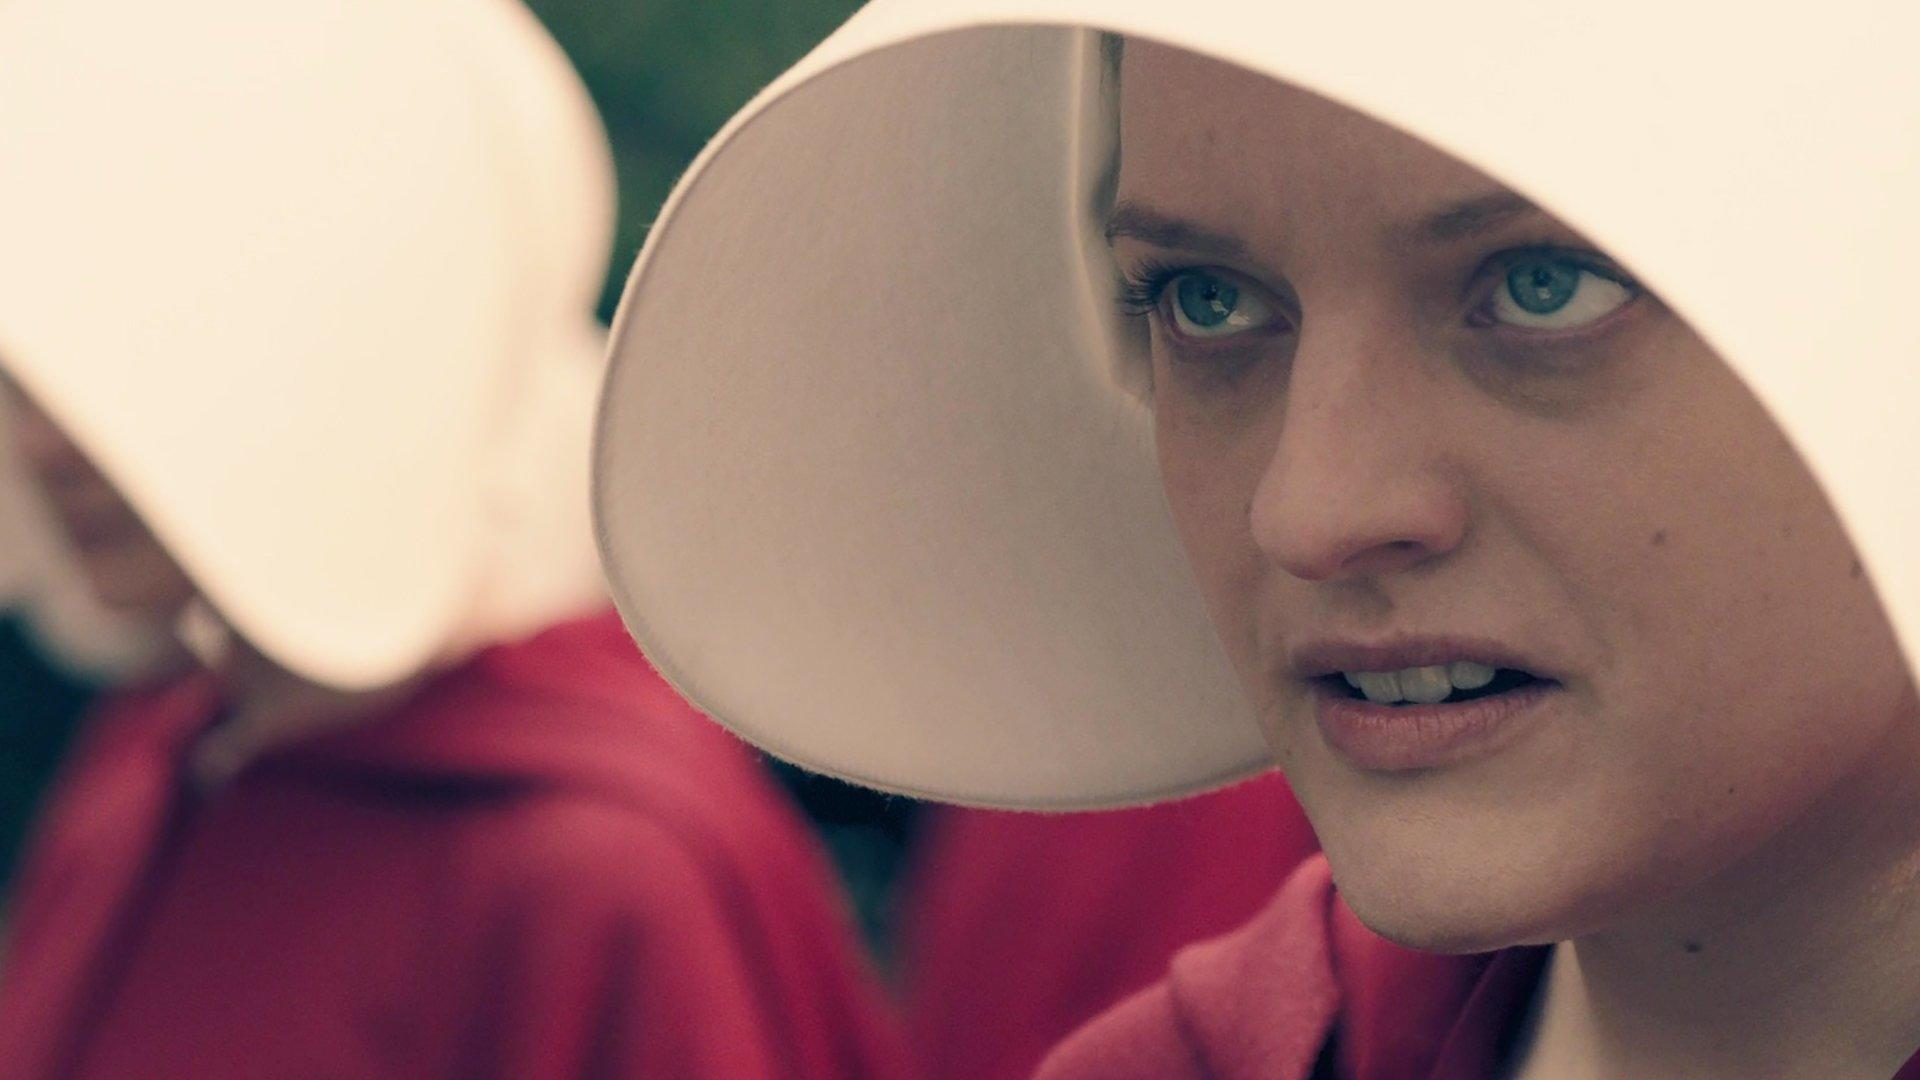 Offred Summary - The Handmaid's Tale Season 1, Episode 1 Episode Guide